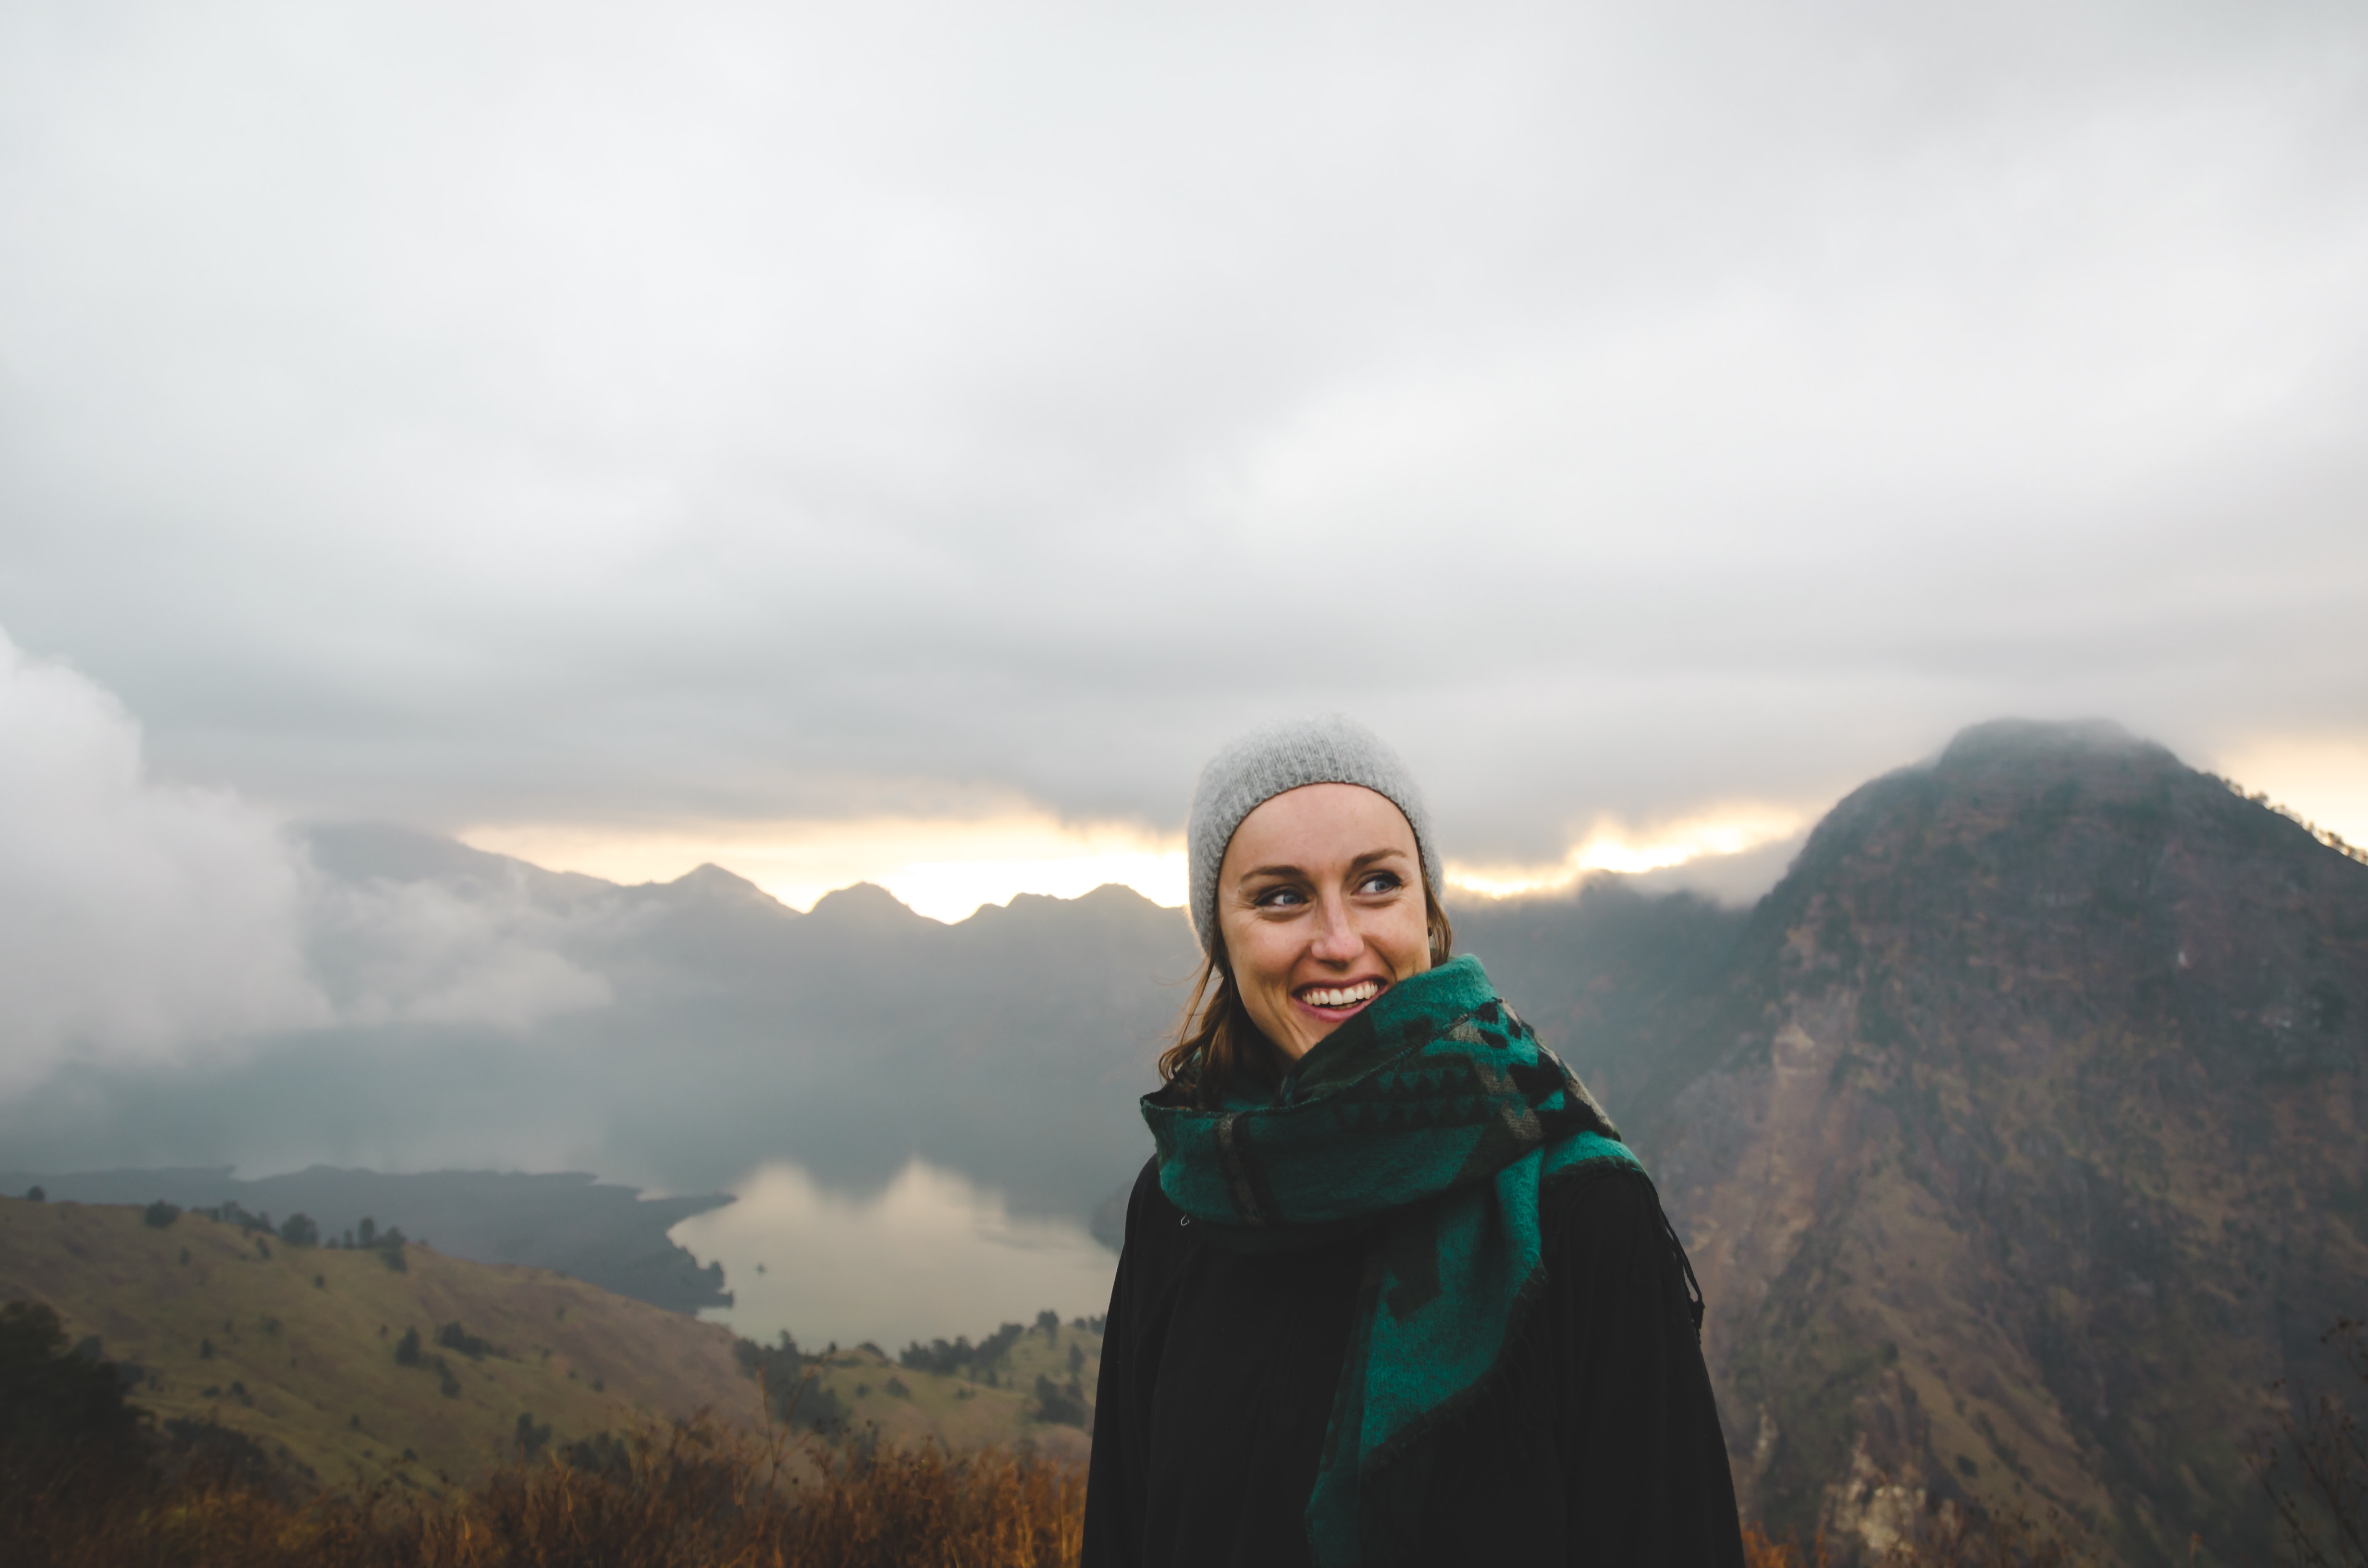 woman wearing green scarf smiling